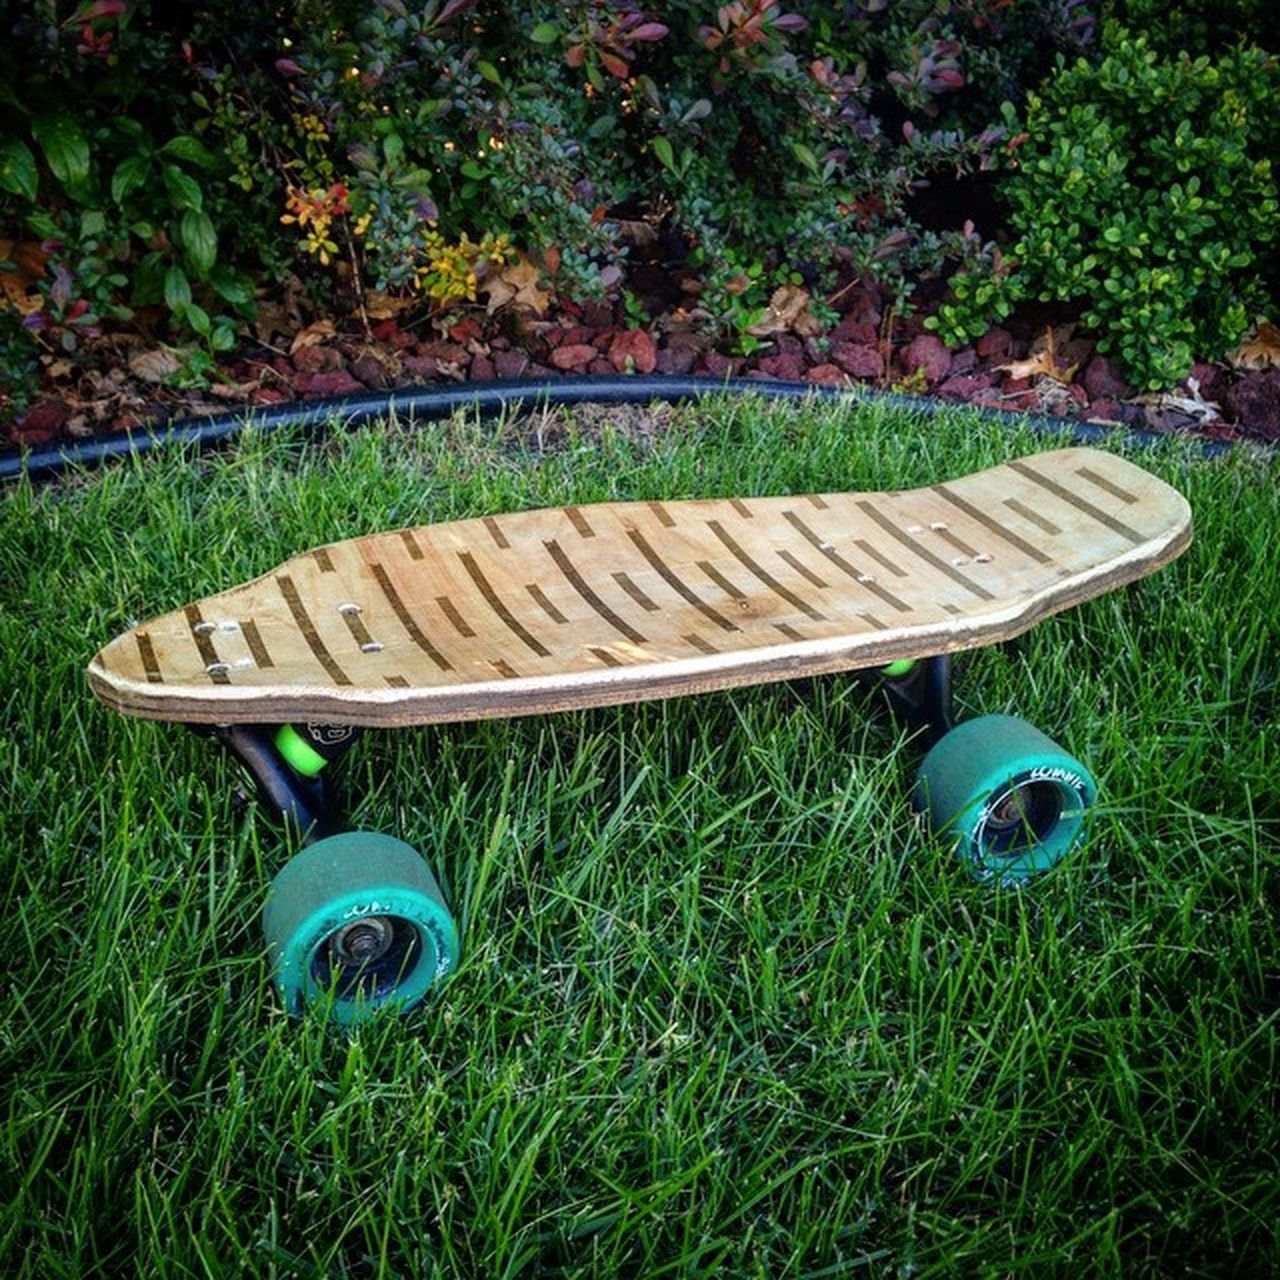 -------------------------------------------------- 😜Made a Custom Penny board and then put my huge Longboard Trucks on it... I'm looking into possibly making & selling custom boards this summer.🌅 Stay tuned to @ross_what_up329 and my account for future information if you are interested. 👍🏼 -------------------------------------------------- 😚 Longboards Longboarding Landyachtzlongboards Landyachtzswitchblade Originalskateboards Holesome Holesomepucks Gopro Goprohero Goprohero3 Goprooftheday Goprouniverse The Baffle37 Sector9 😚 😚 Instagood Snapseed VSCO Iphonephotography IPhone Pennyboard Penny PennyUSA BoardForSale 4Sale Penny4Sale --------------------------------------------------